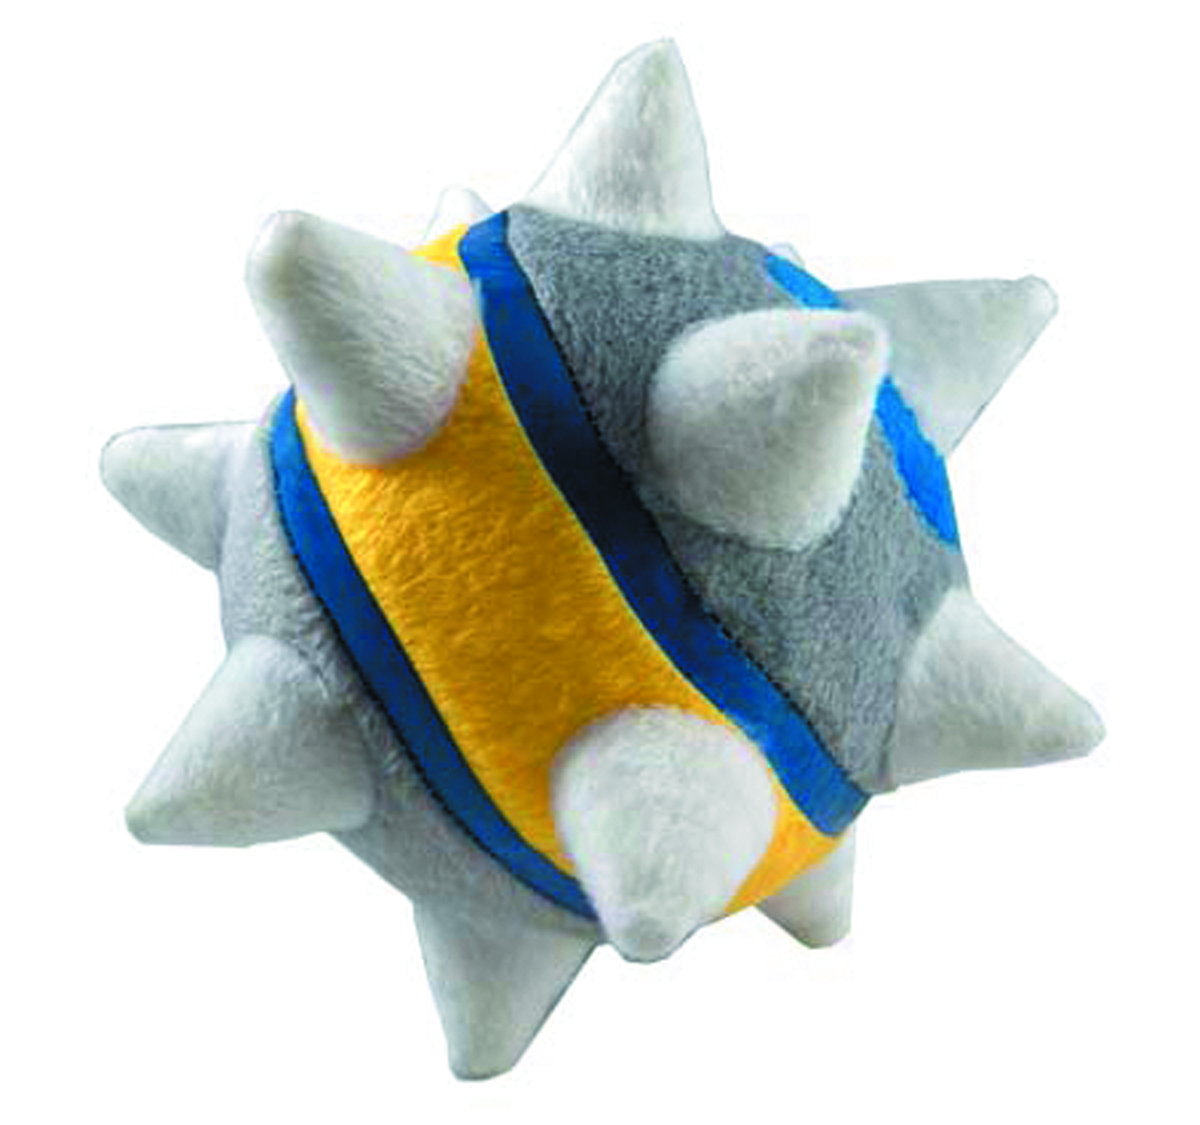 TEAM FORTRESS 2 PLUSH STICKY BOMB BLUE